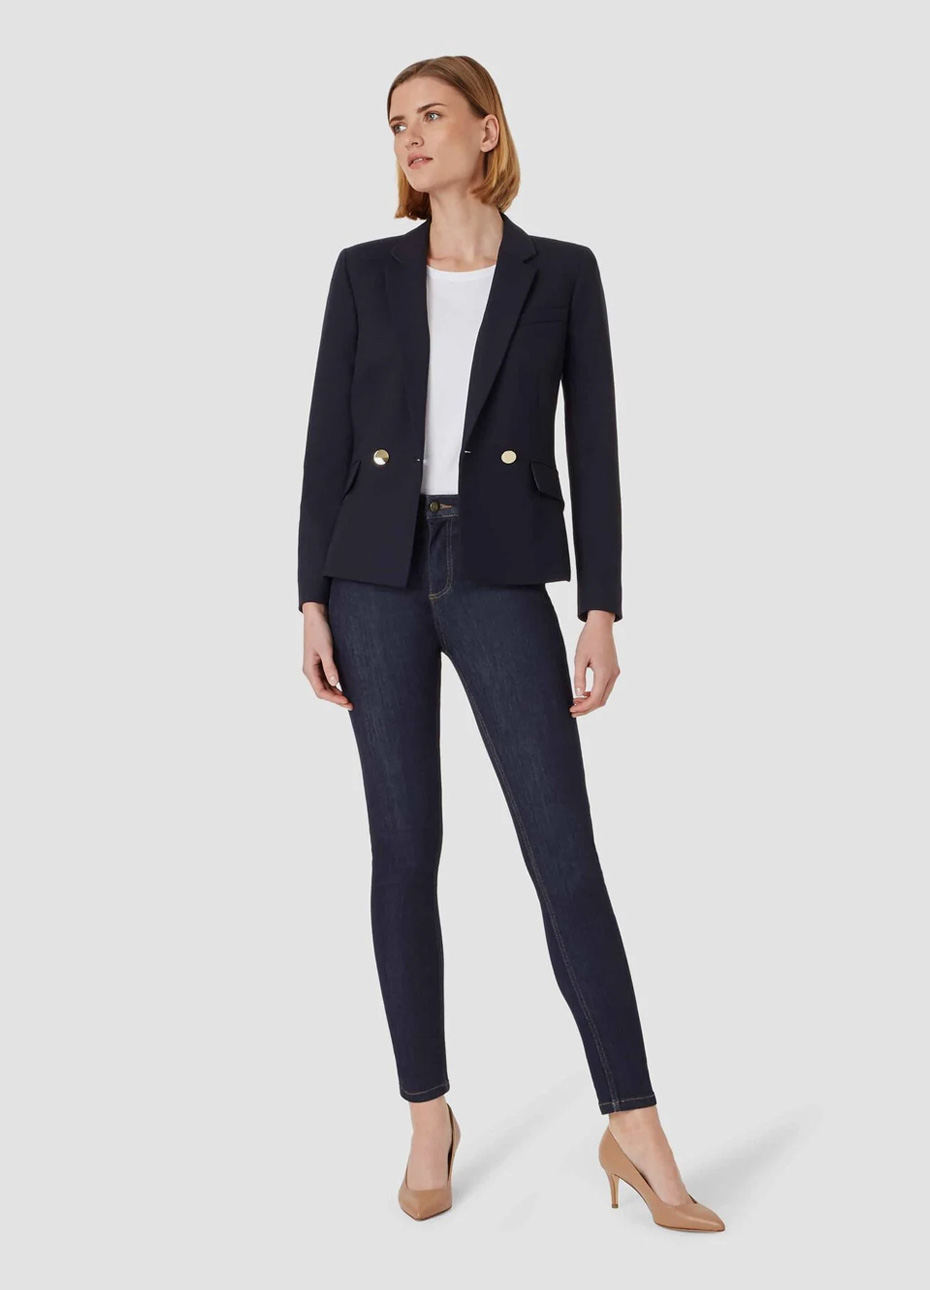 Women's blazer in black paired with a white top underneath, black jeans and nude court shoes by Hobbs.